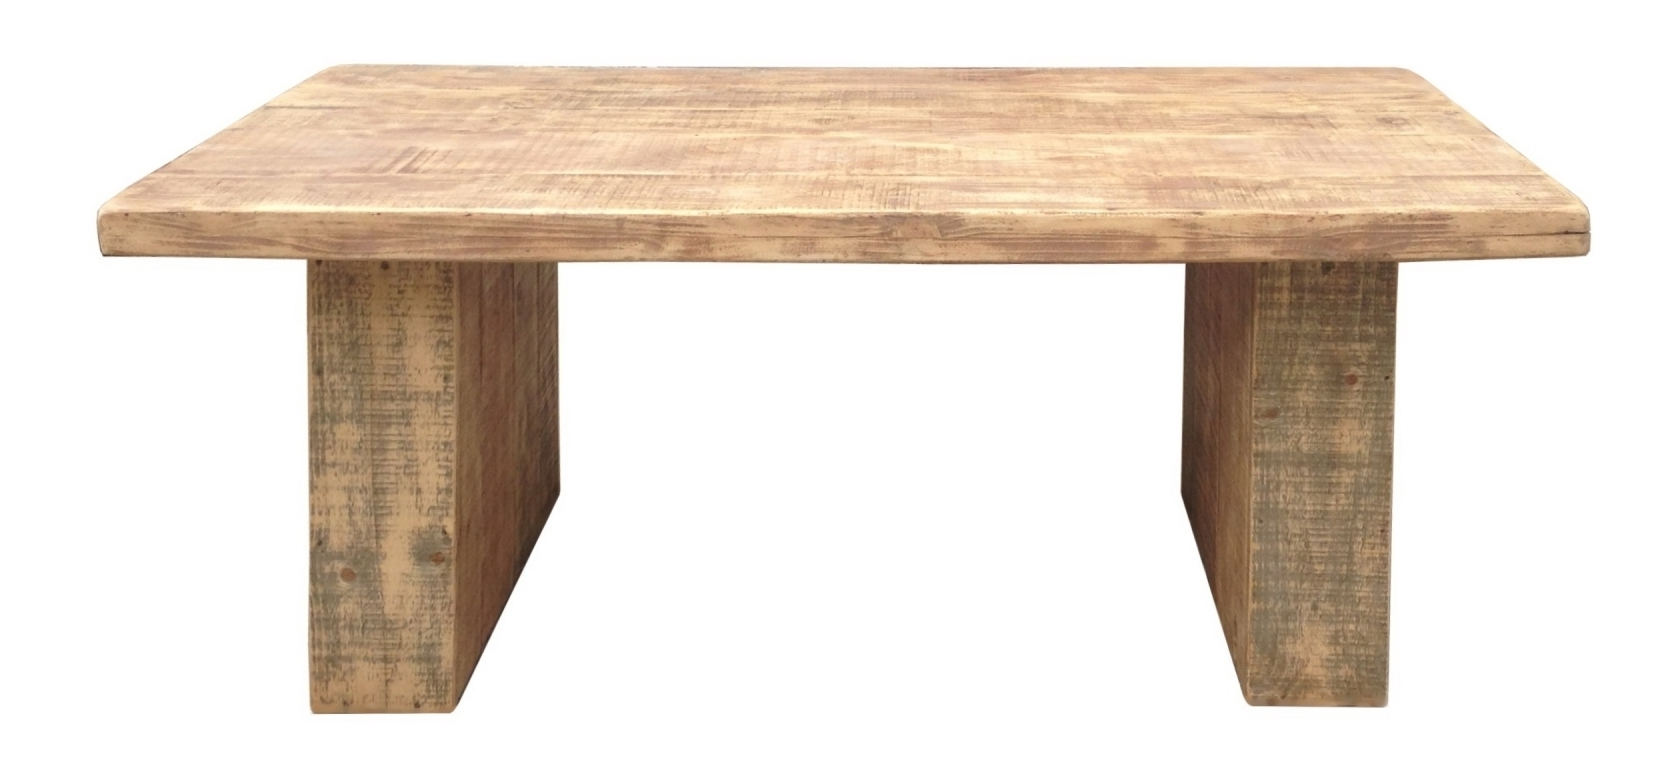 Pine Dining Table Thick Top, Massive Legs – Umaid Craftorium Pertaining To Popular Dining Tables With Large Legs (View 15 of 25)